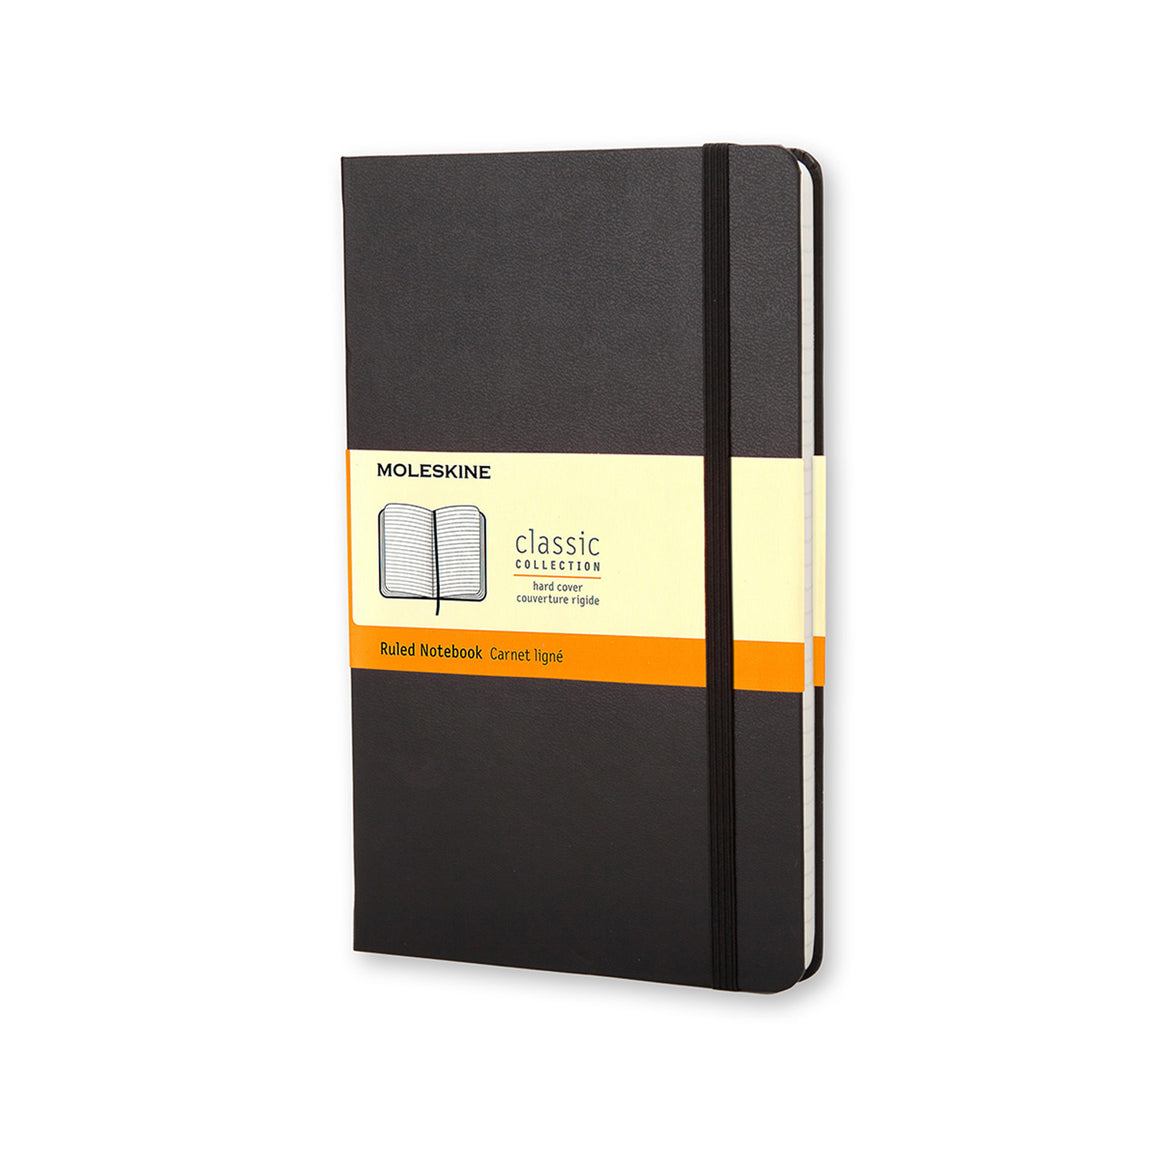 Moleskine Hard Cover Notebook - Ruled, Large, Black